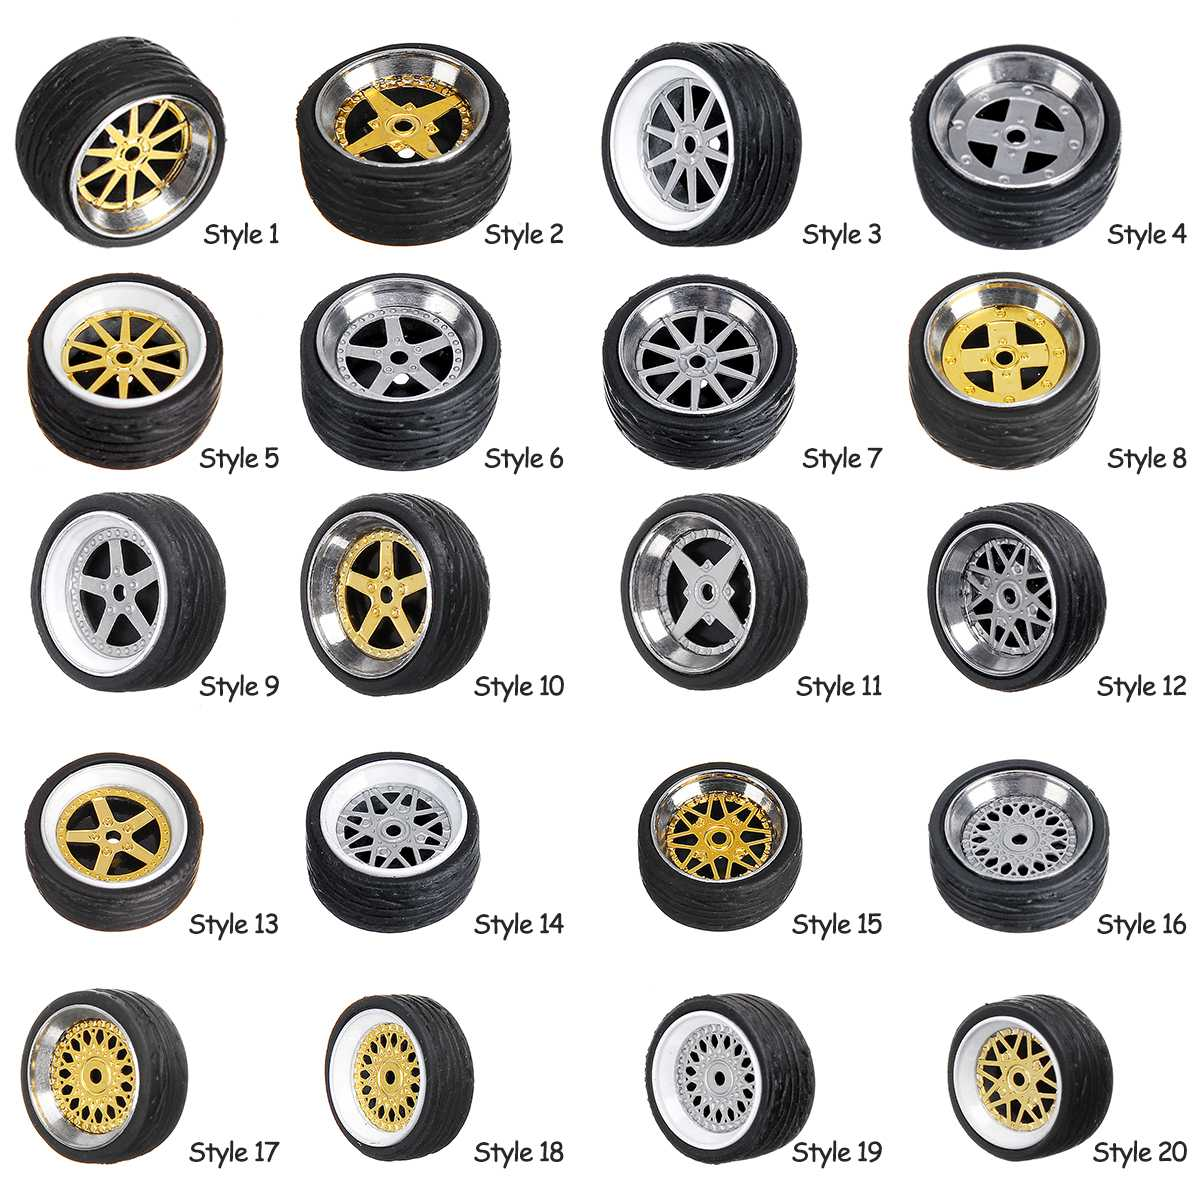 4pcs/box Alloy Wheels Tire Set Axles Vehicle Wheels Tire Modified Alloy Car Refit Wheels For 1/64 Vehicle Car Model